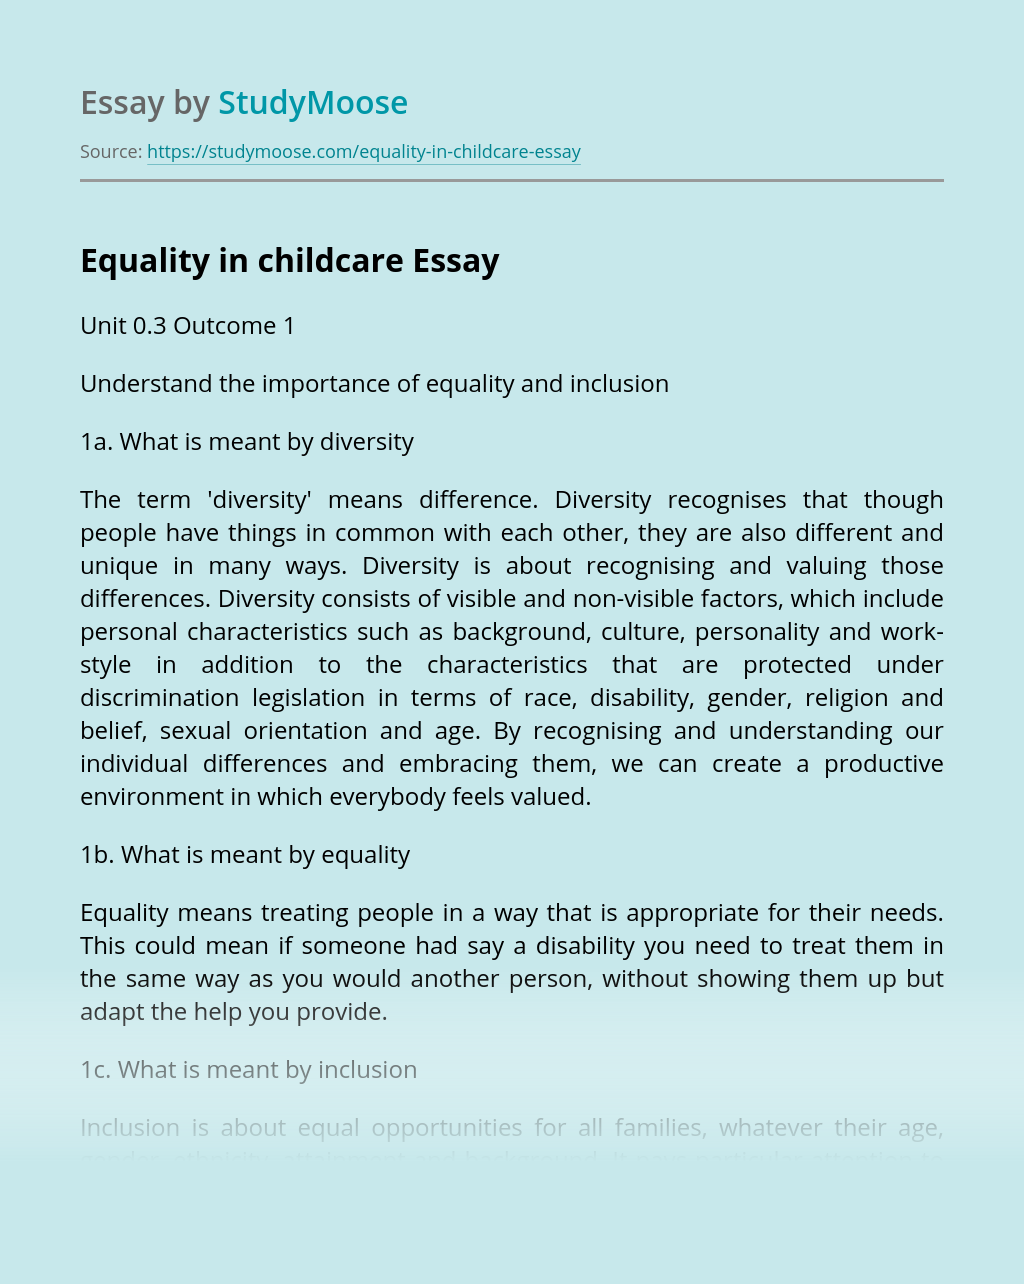 Equality in childcare